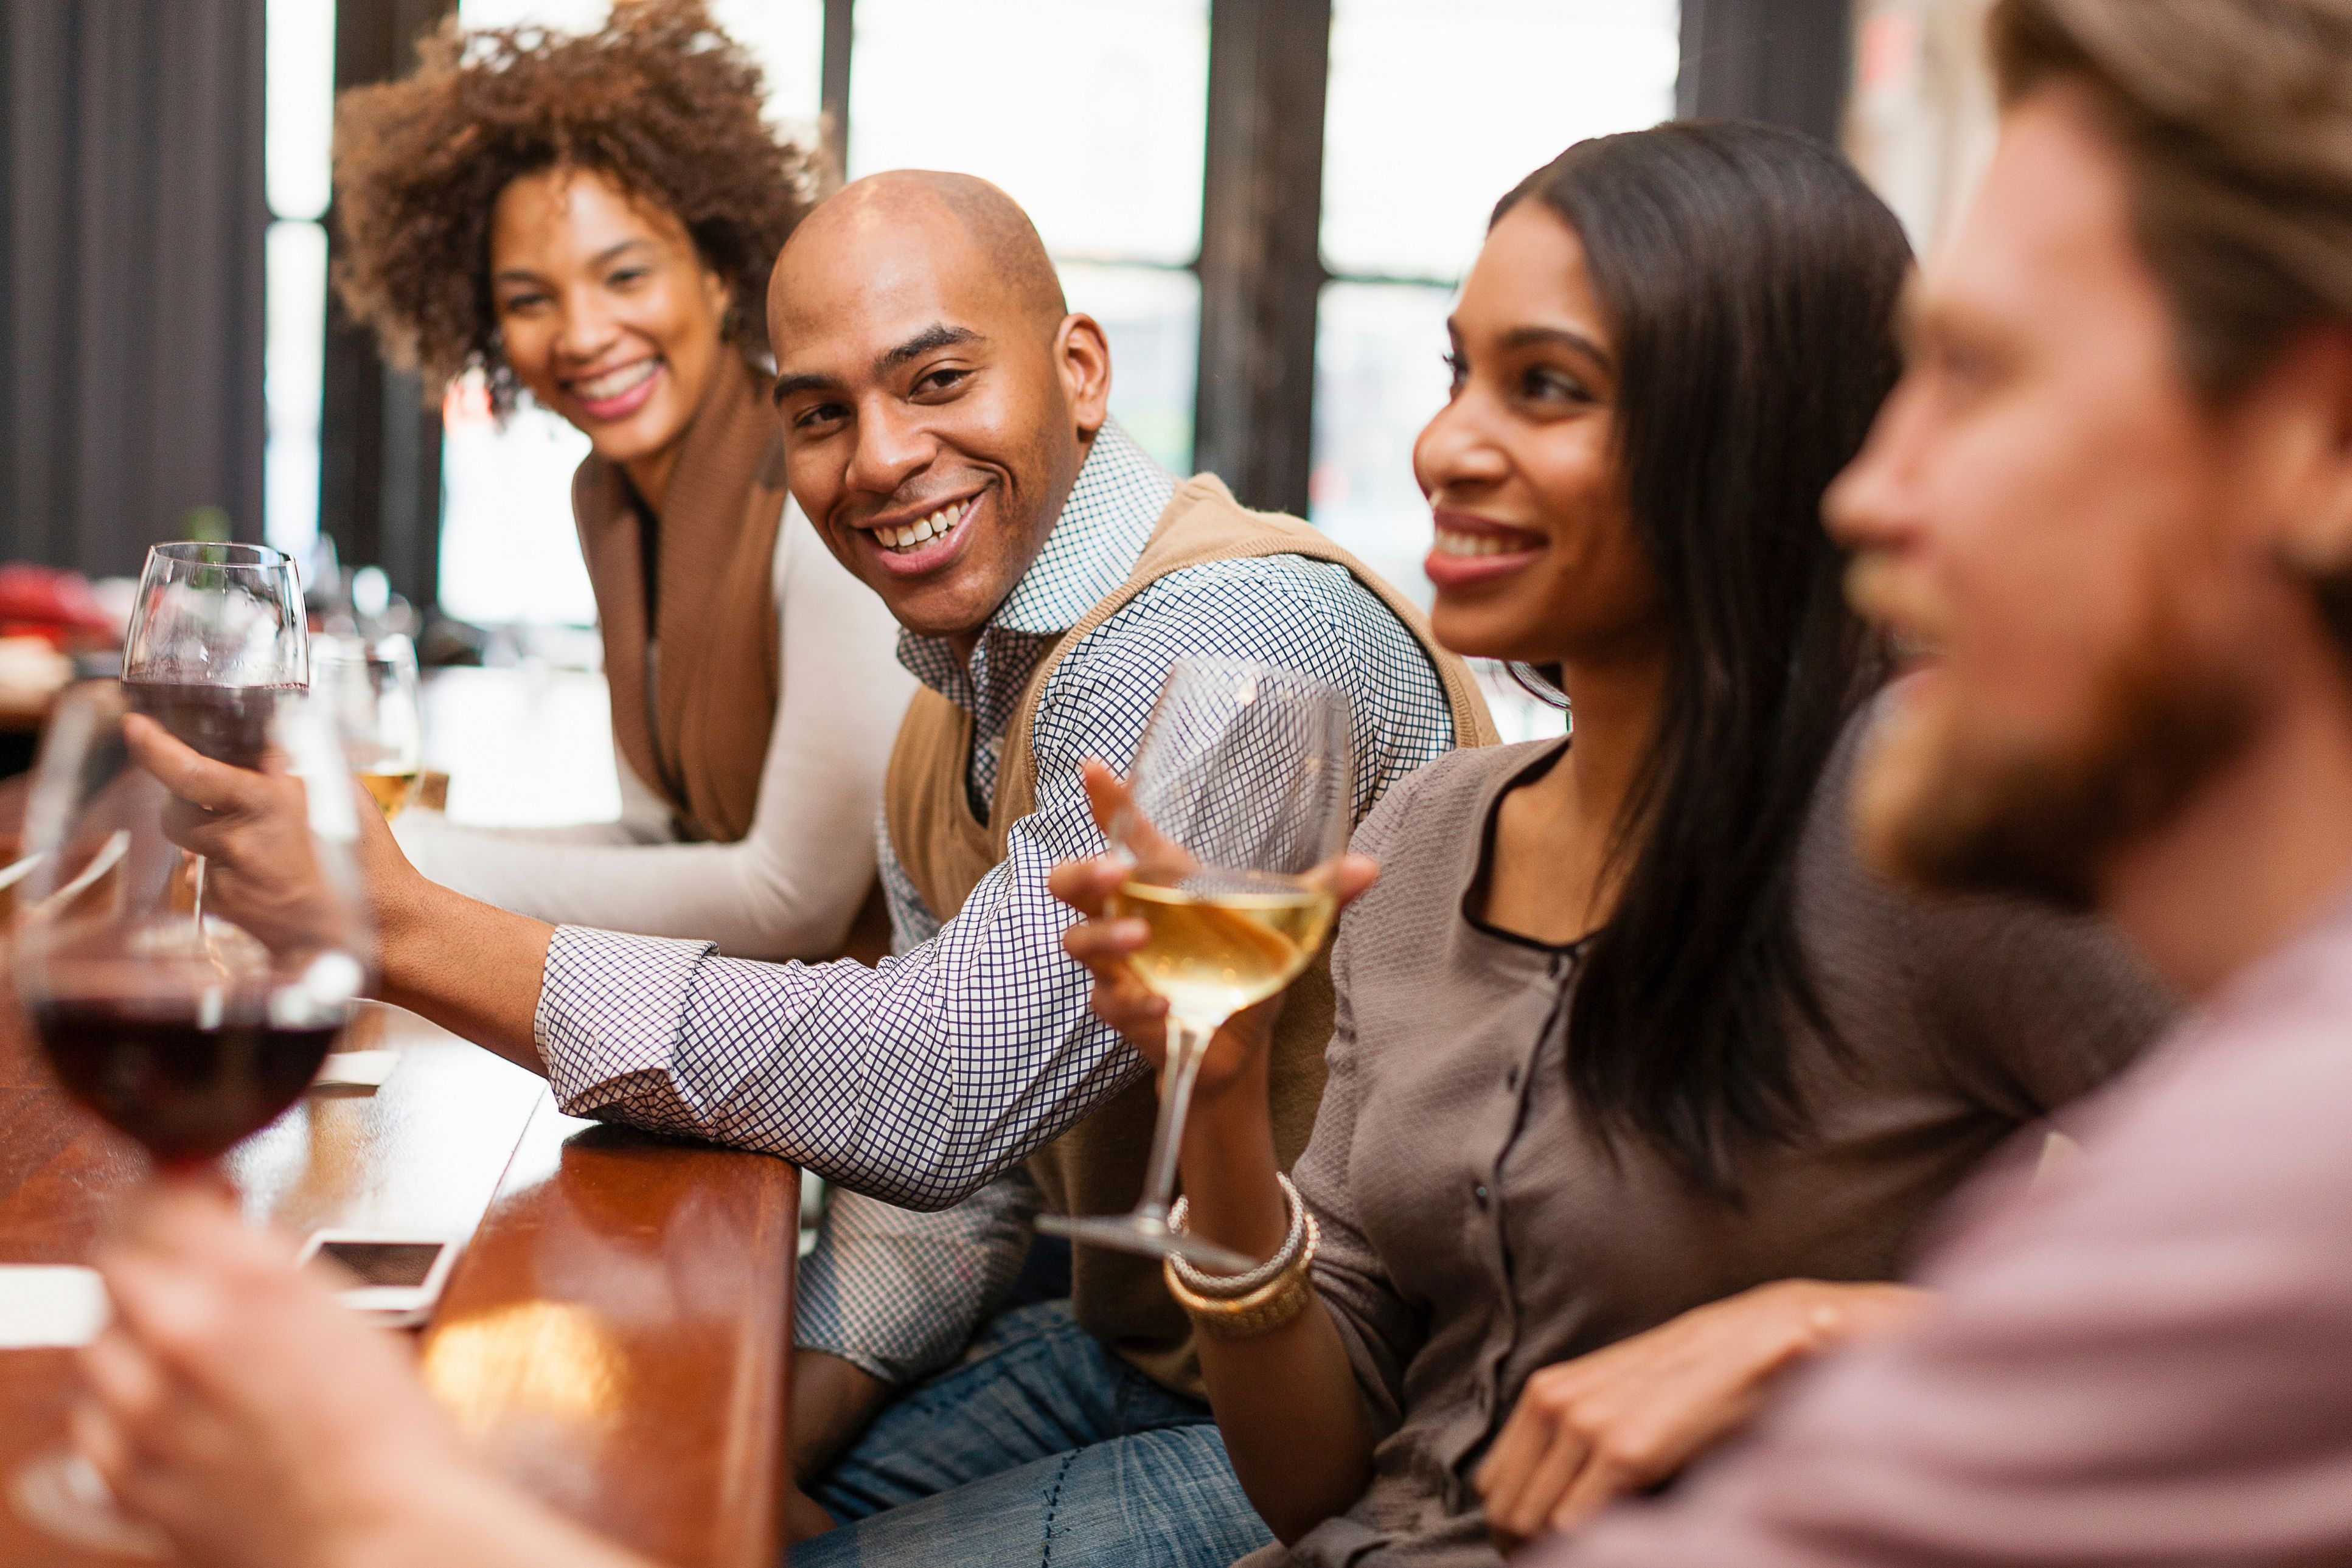 Group of workers enjoying a fun culture of happy hour together after work.